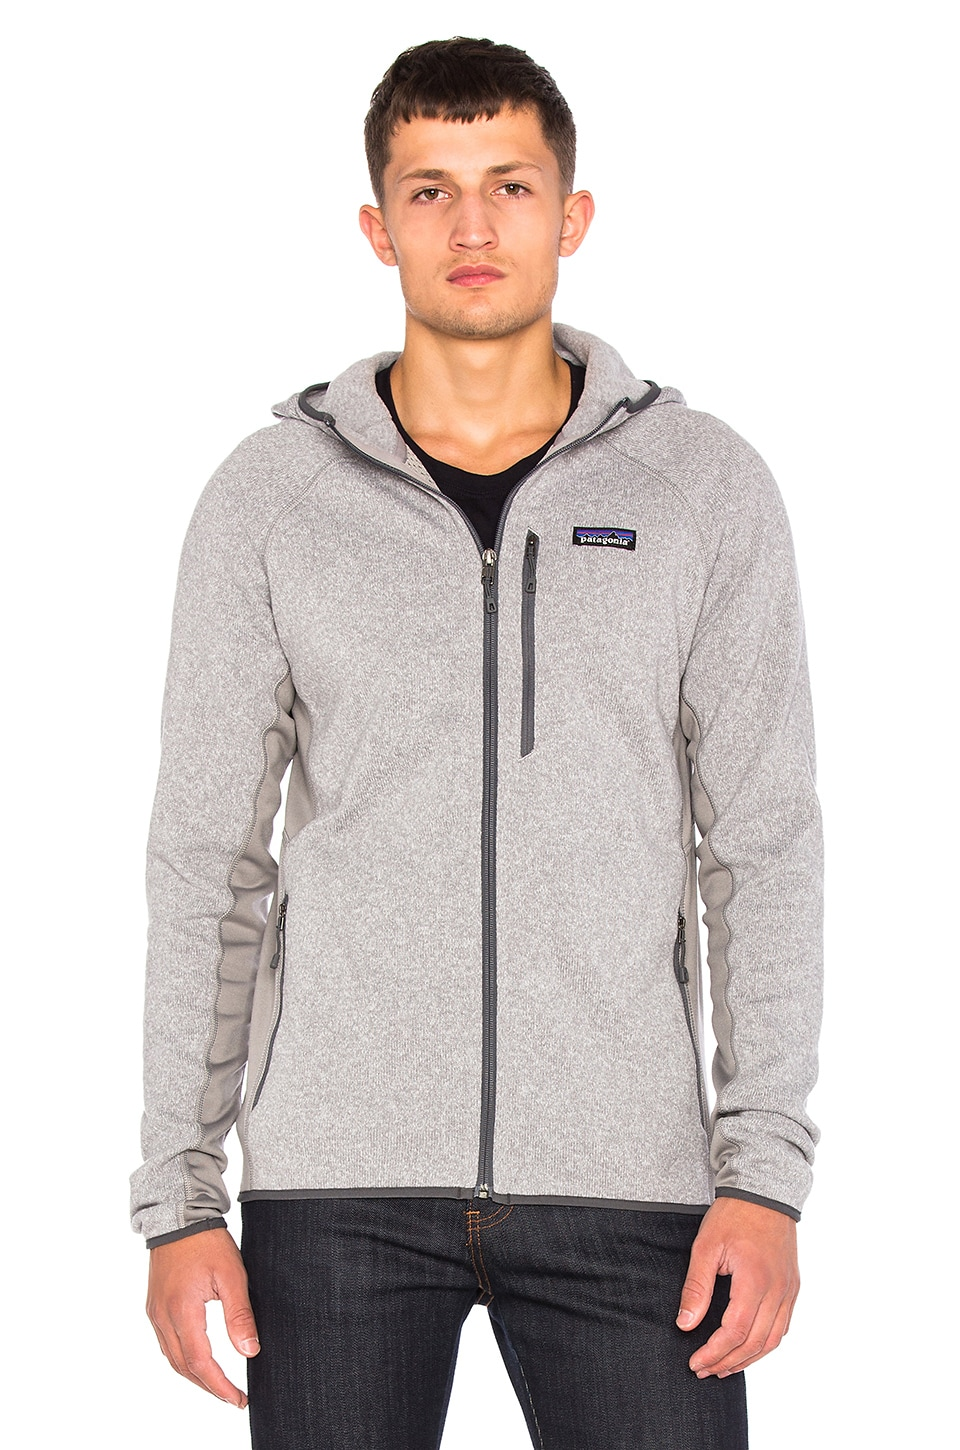 Performance Better Sweater Hoody